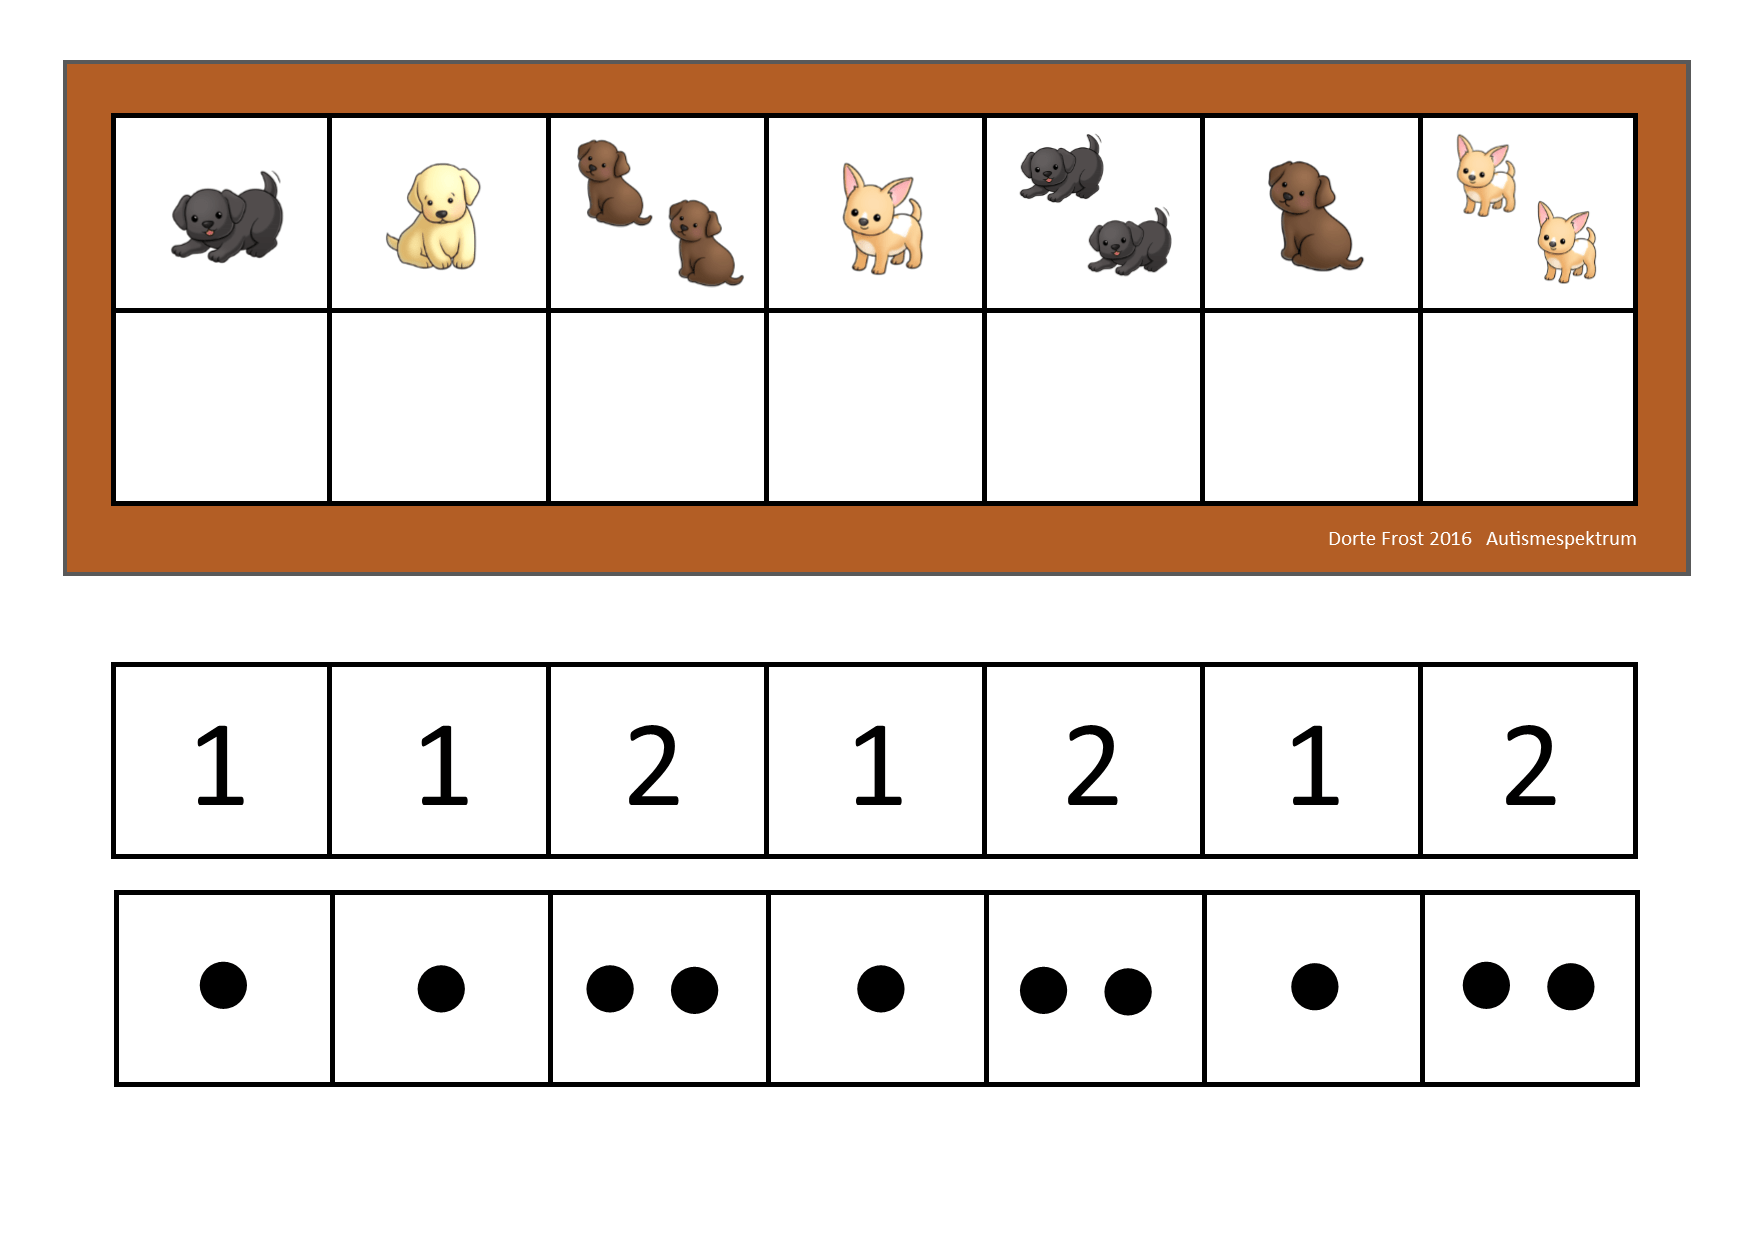 Counting Game Use Dots Or Numbers Depending On What Your Student Can Handle By Autismespektrum